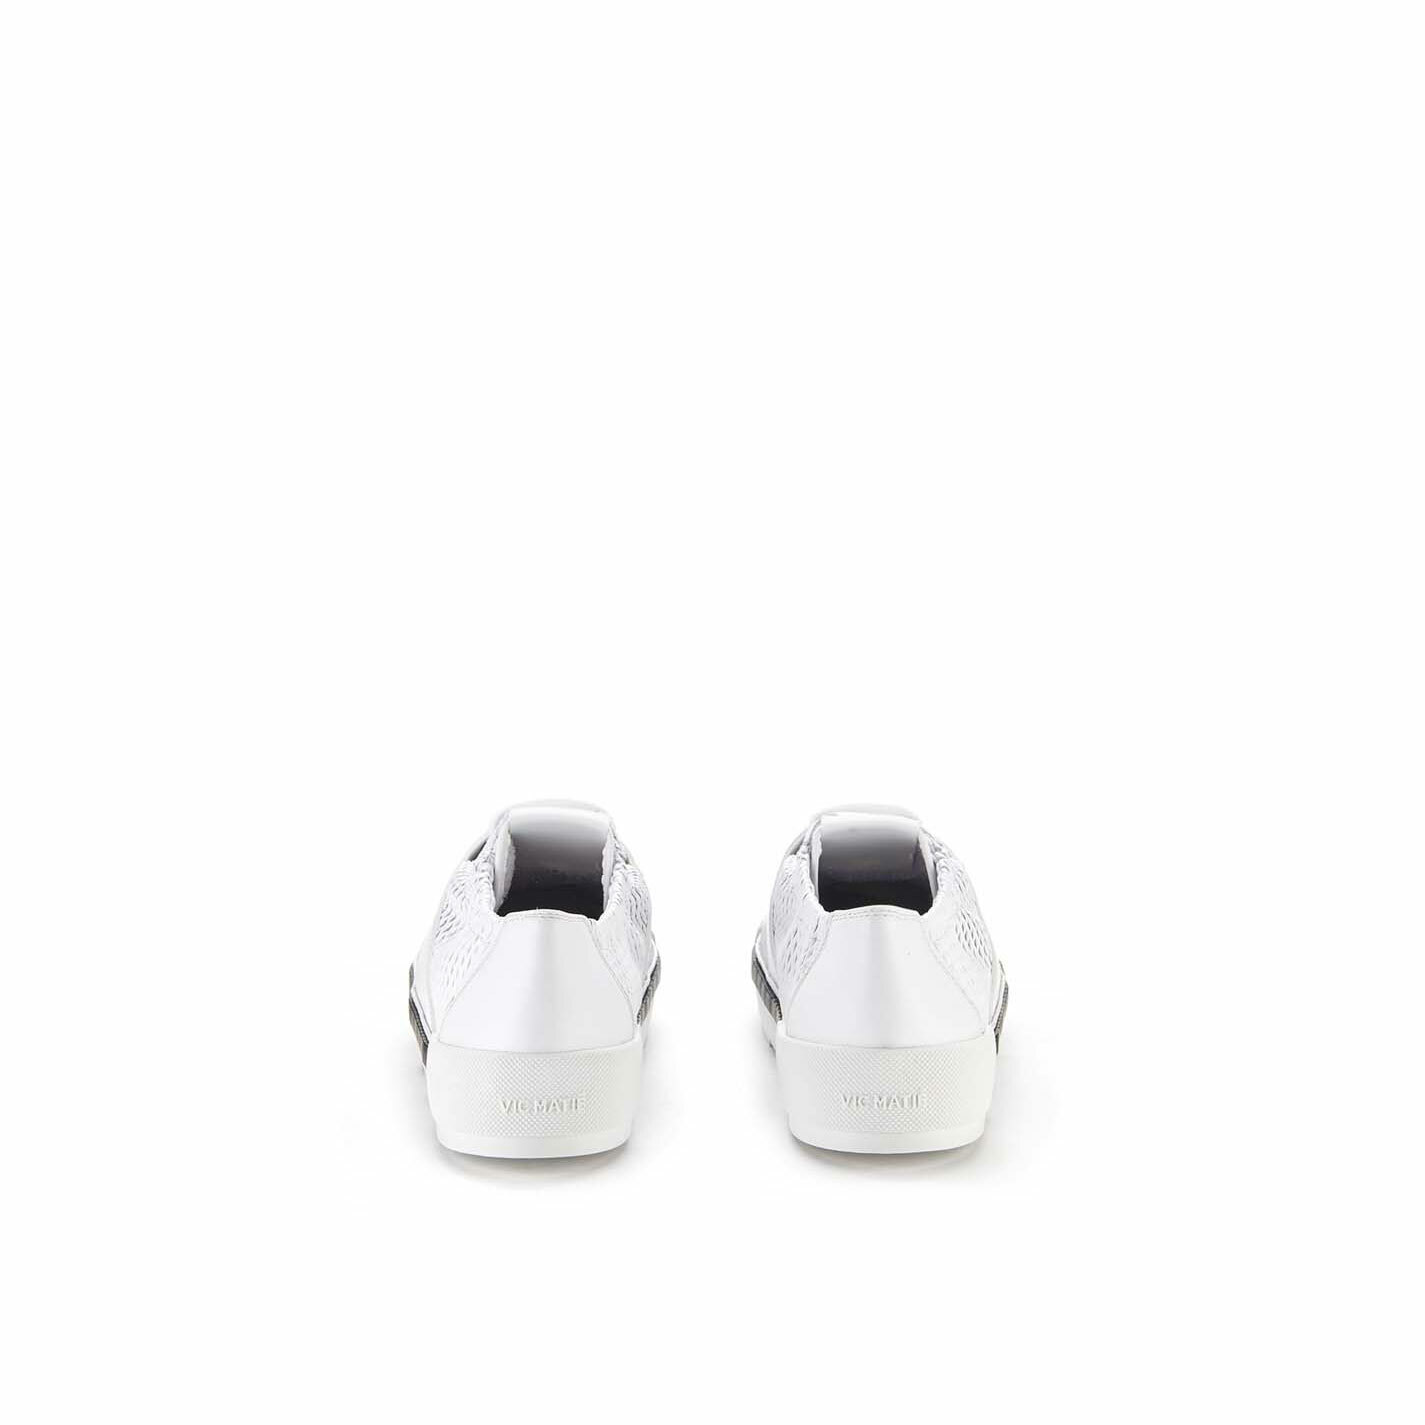 White lace-ups in perforated calfskin